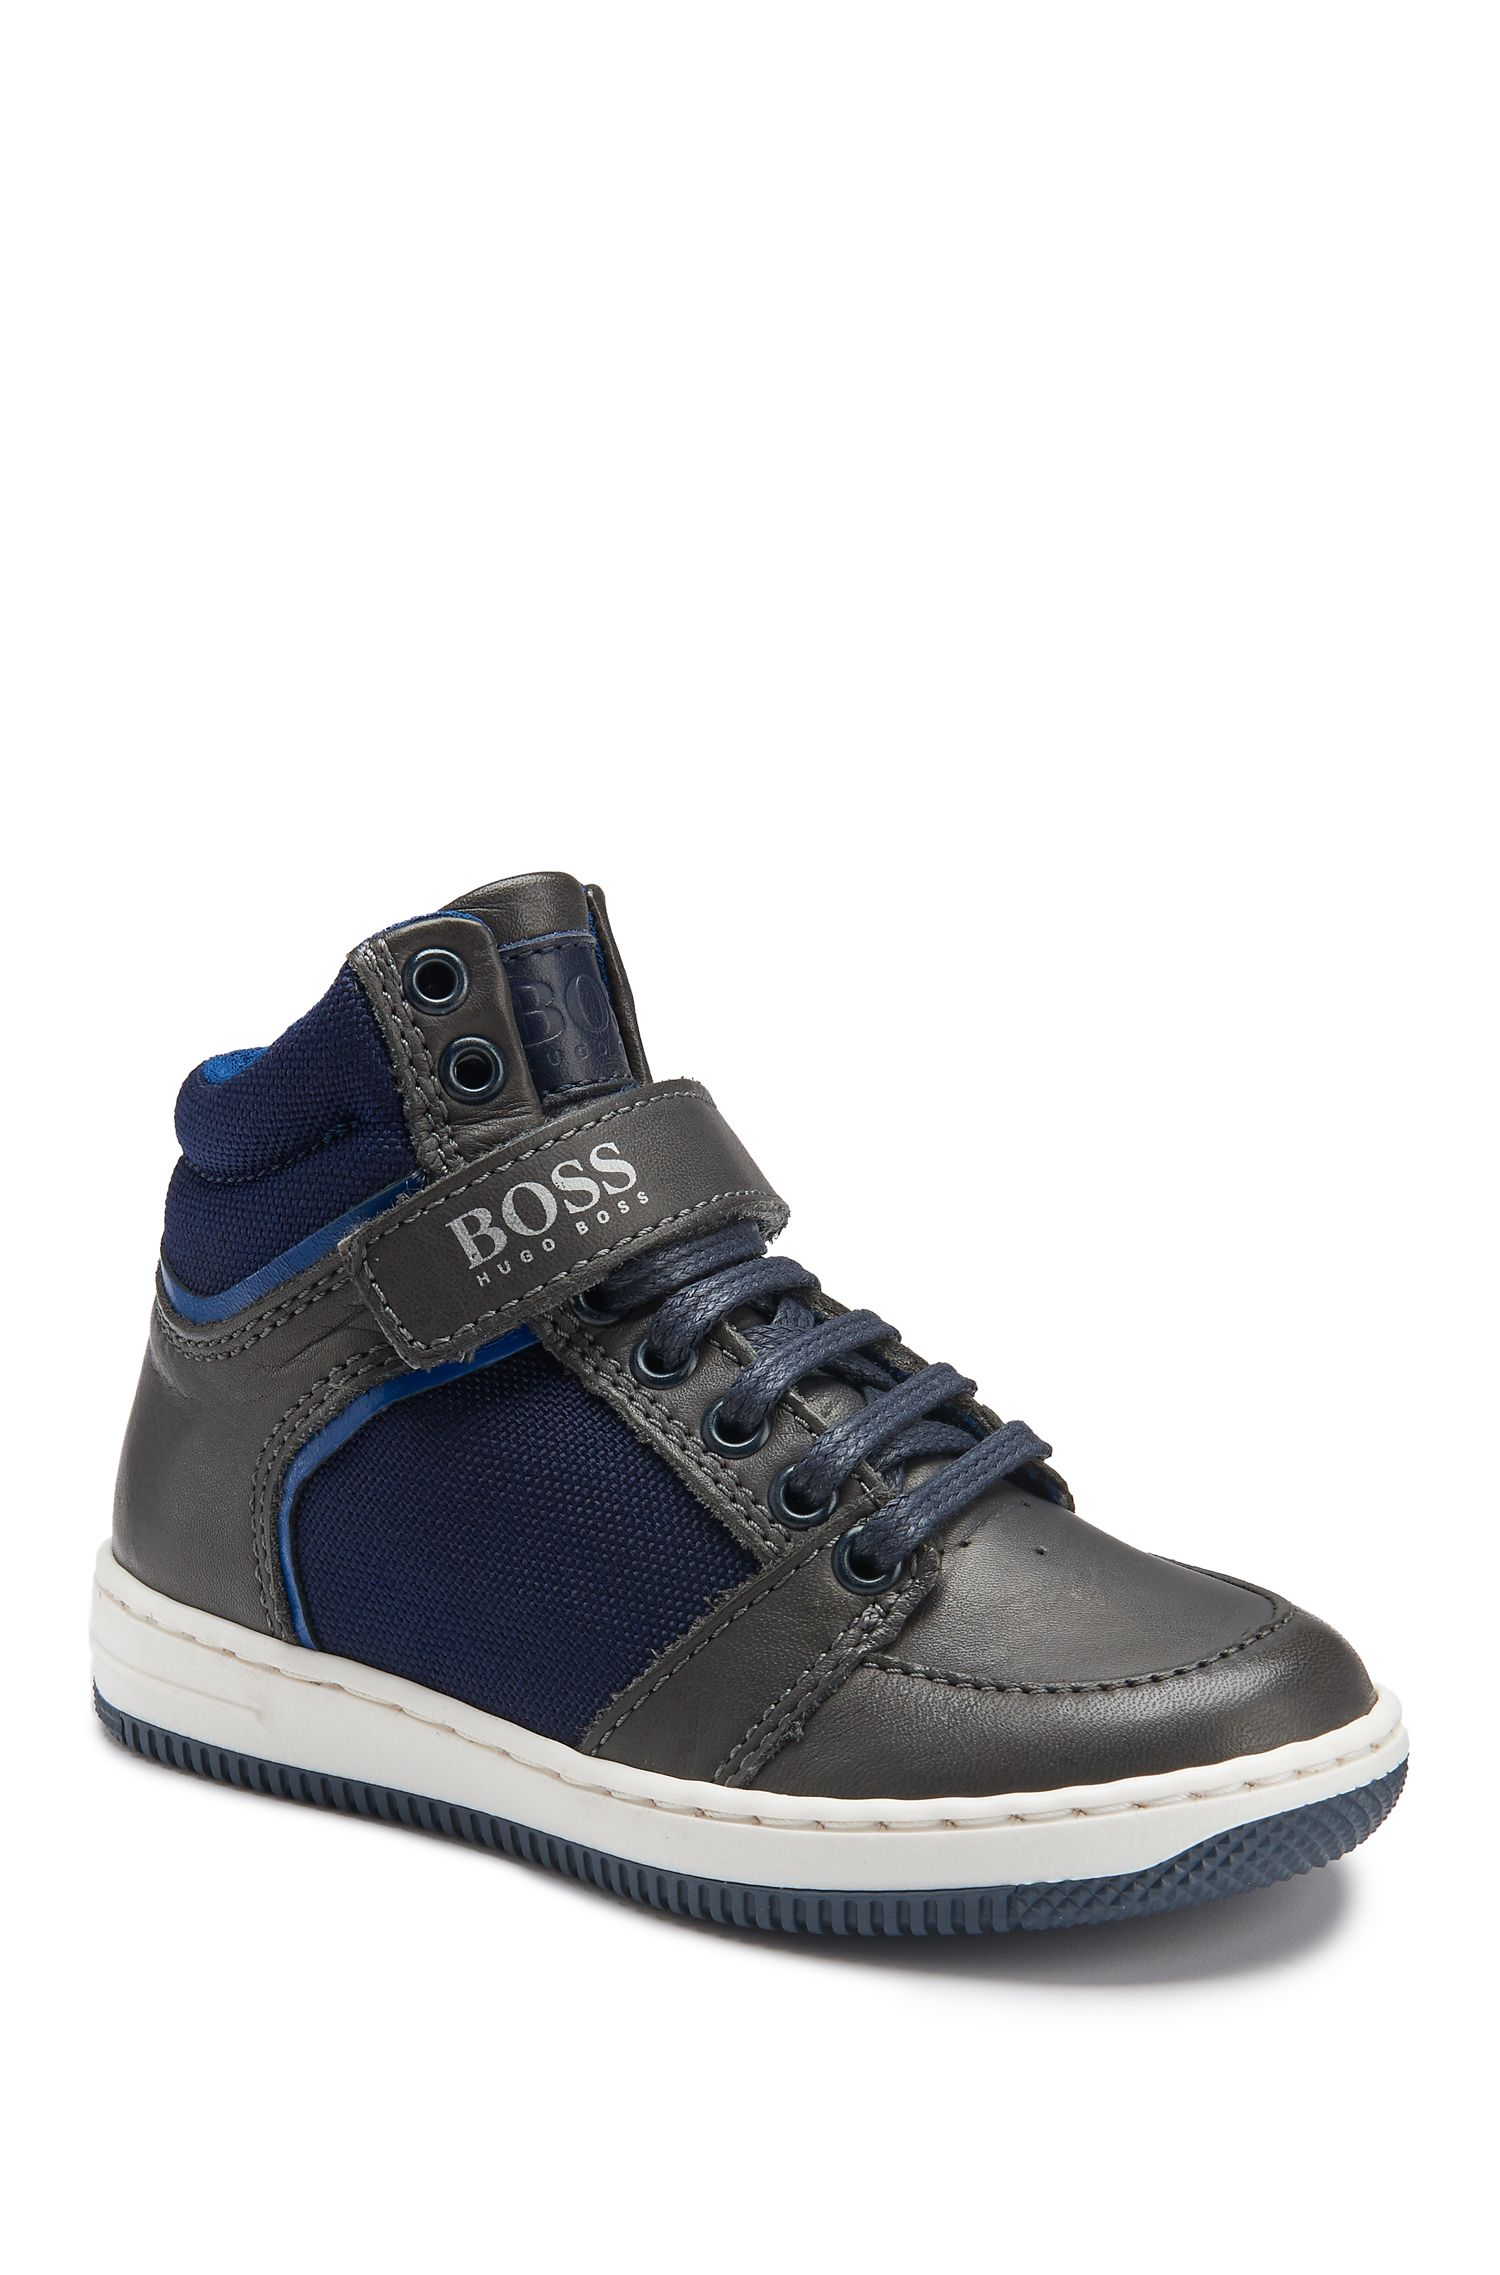 Kids' High Top Leather Sneakers | J29123